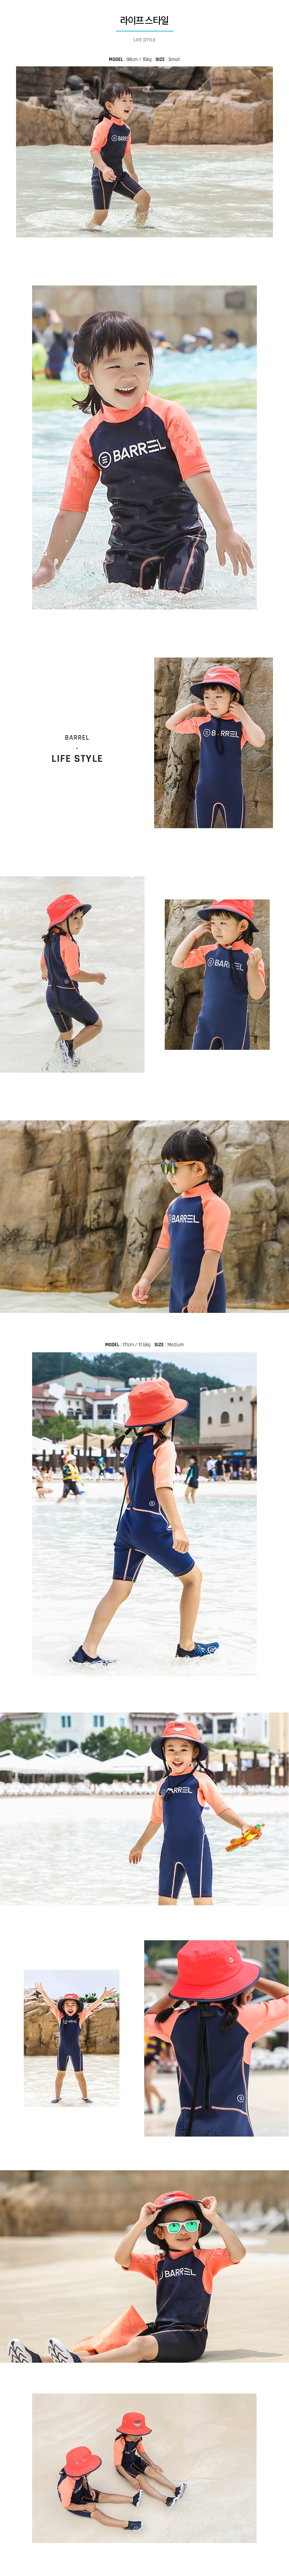 Barrel Kids 1mm Neoprene Spring Suit-NAVY/PEACH_image